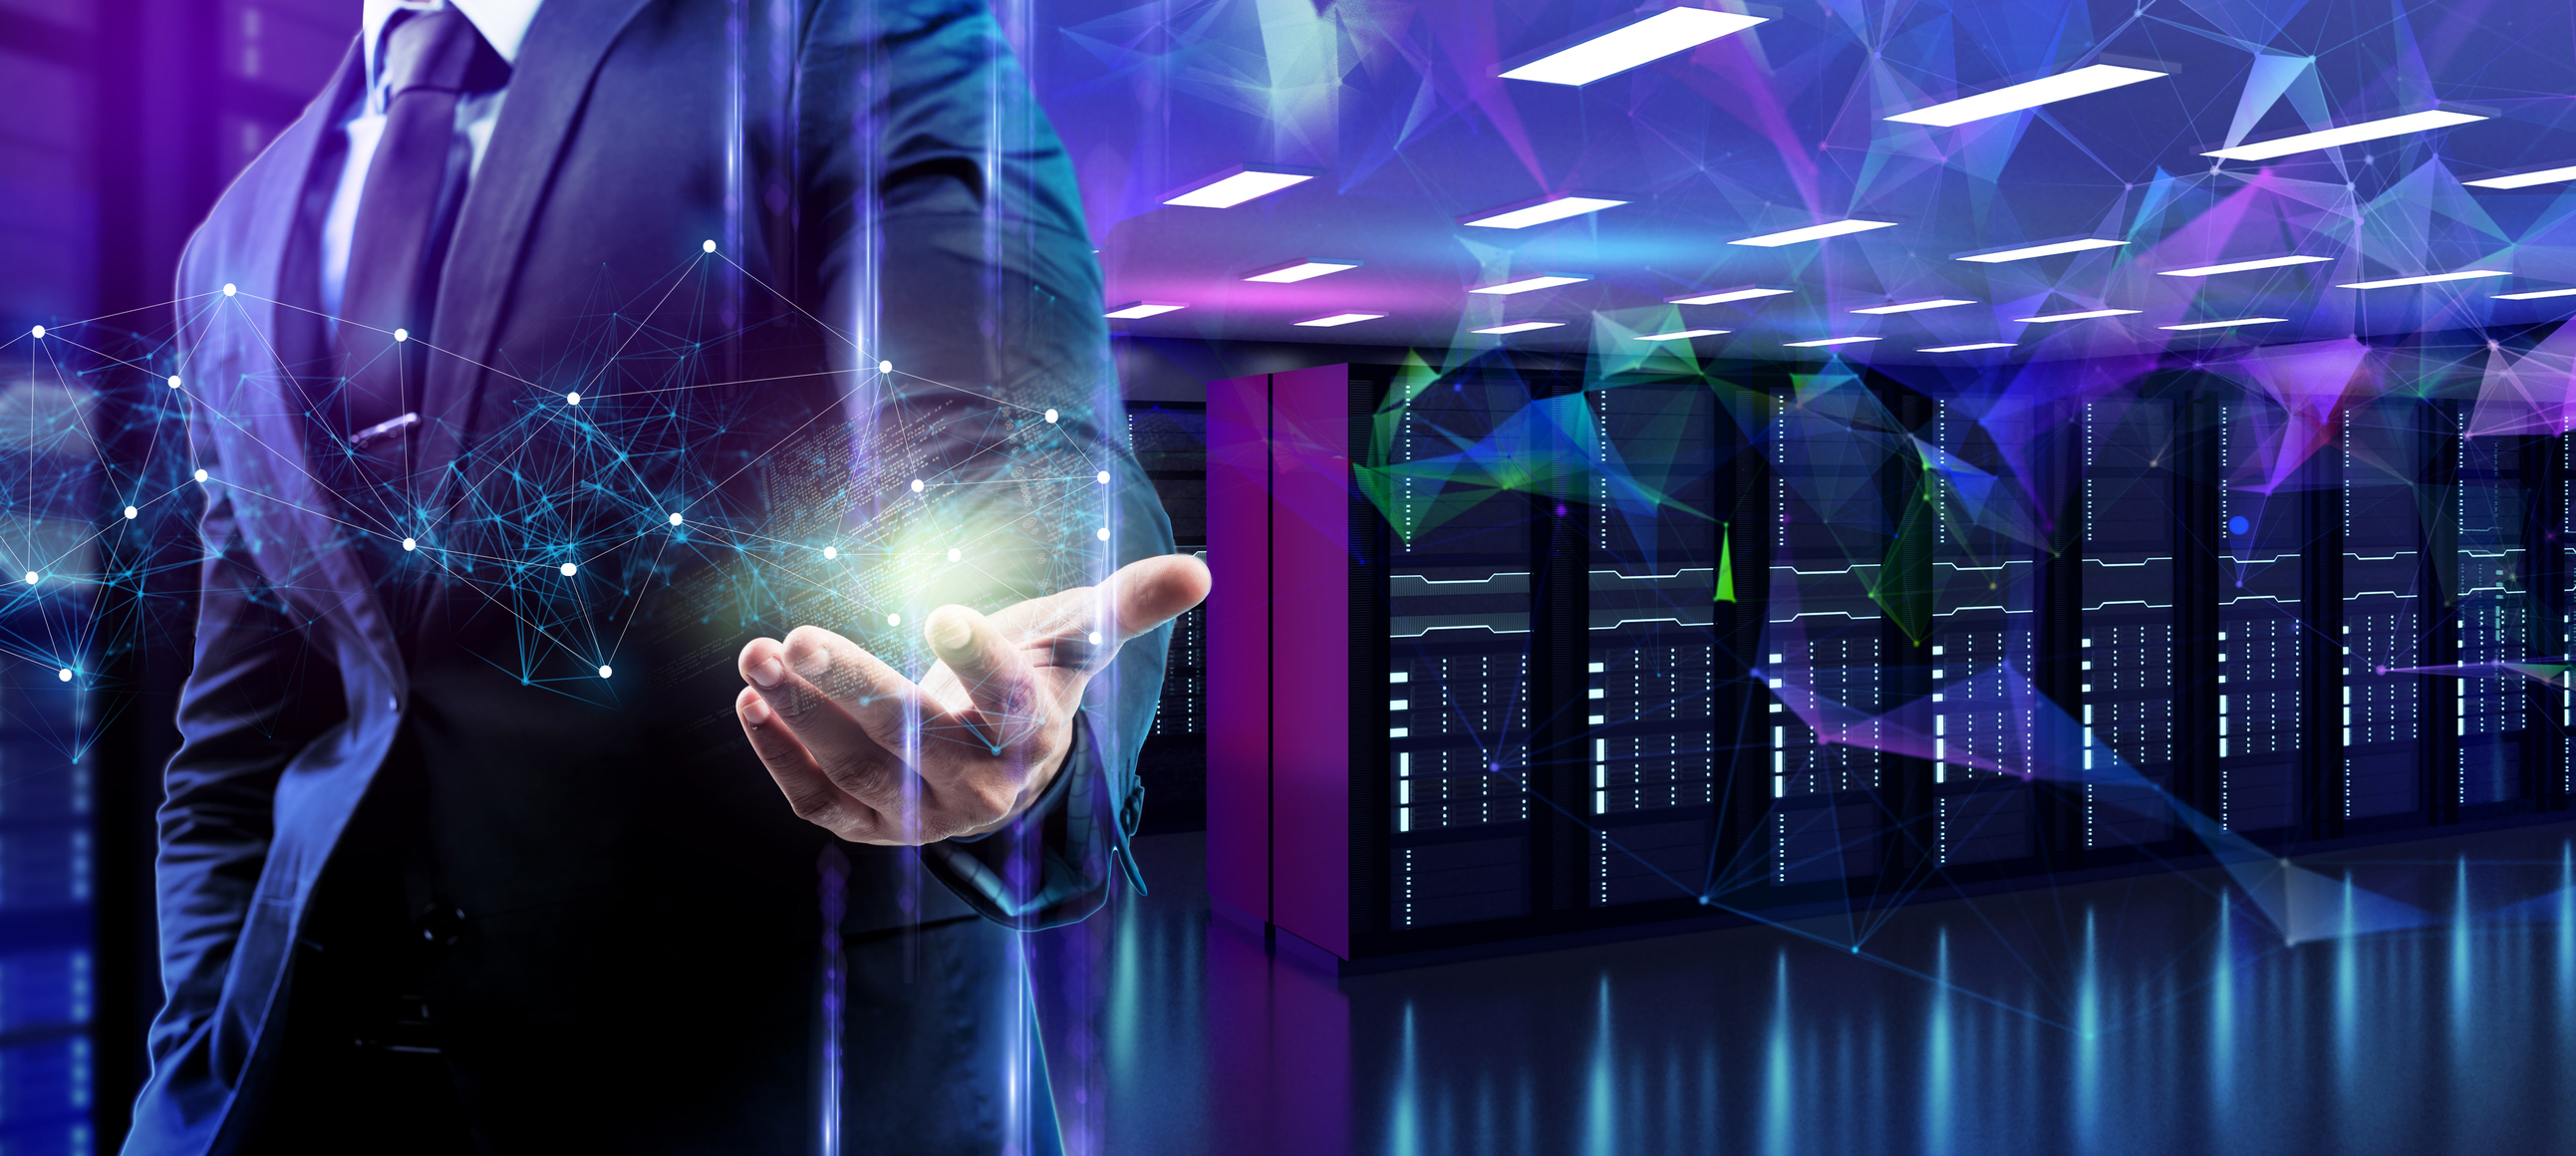 Cloud data, big data, internet of thing IOT technology, business finance and server data center AI artificial intelligence futuristic background, digital cyber online link future smart technology.